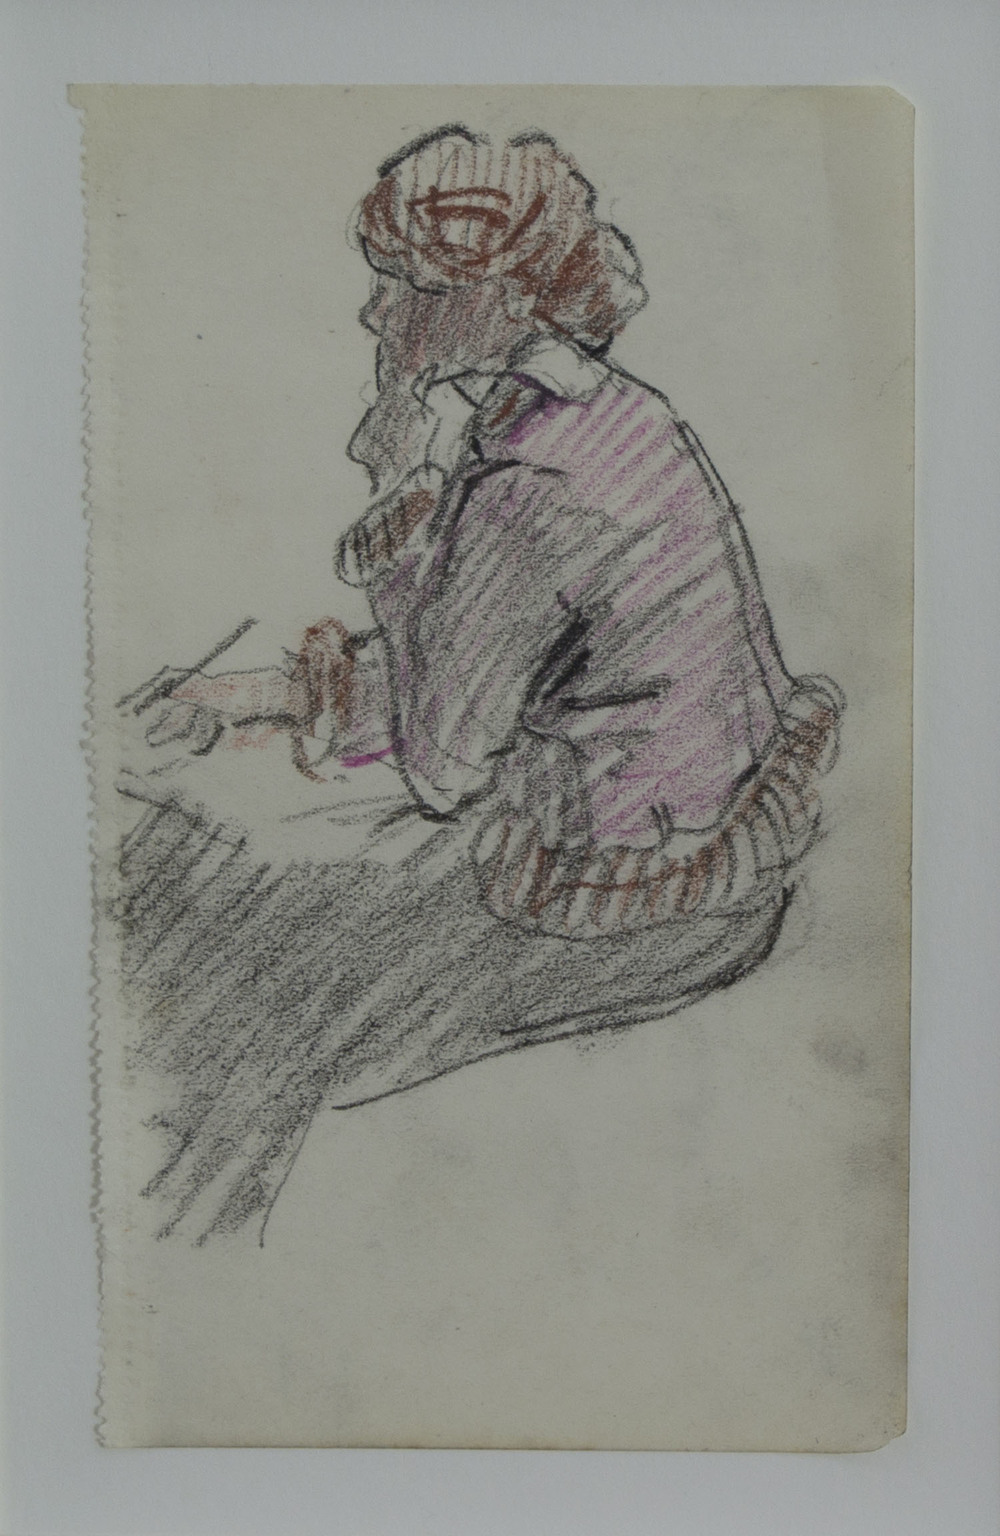 Mary Swanzy 'Young Girl Sketching' coloured pencil drawing 14x9cm.jpg